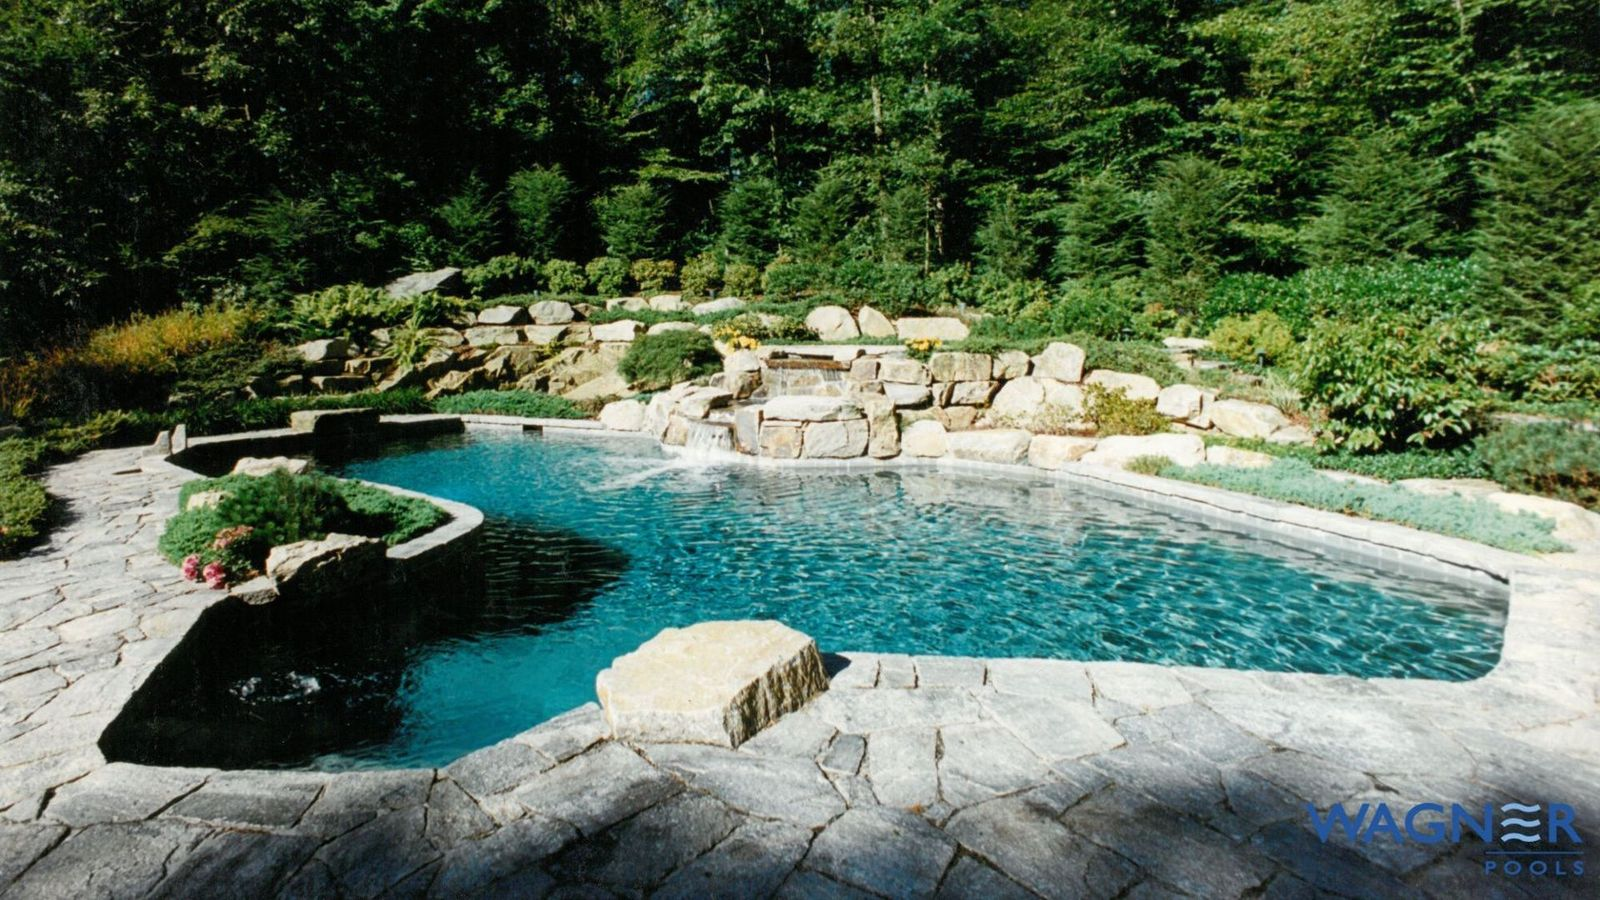 Swimming Pool Features Pool Water Features Wagner Pools Wagner